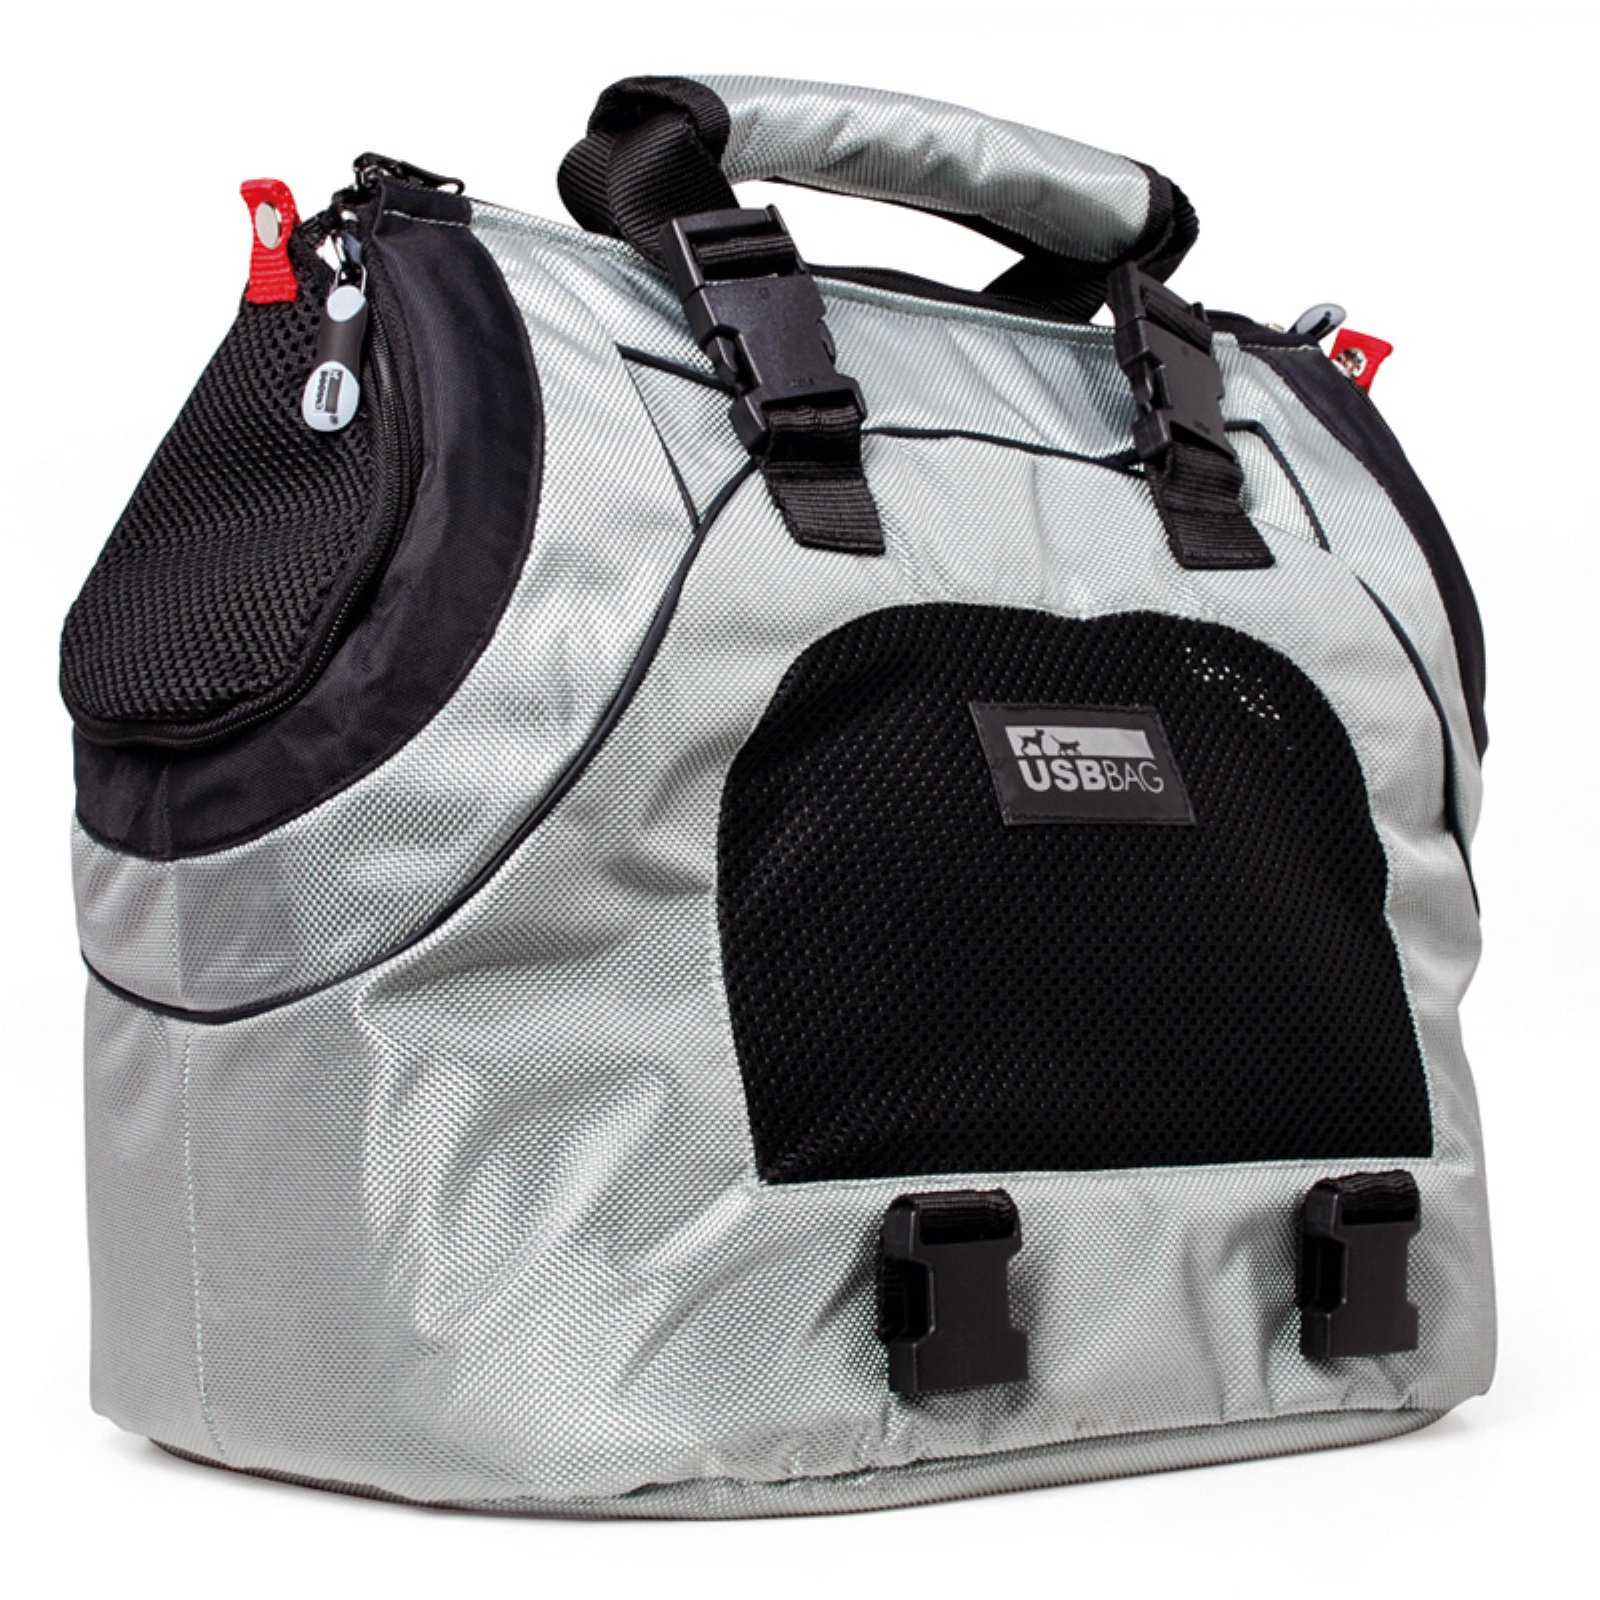 Pet Ego Multifunctional Silver Pet Carrier - Airline Approved